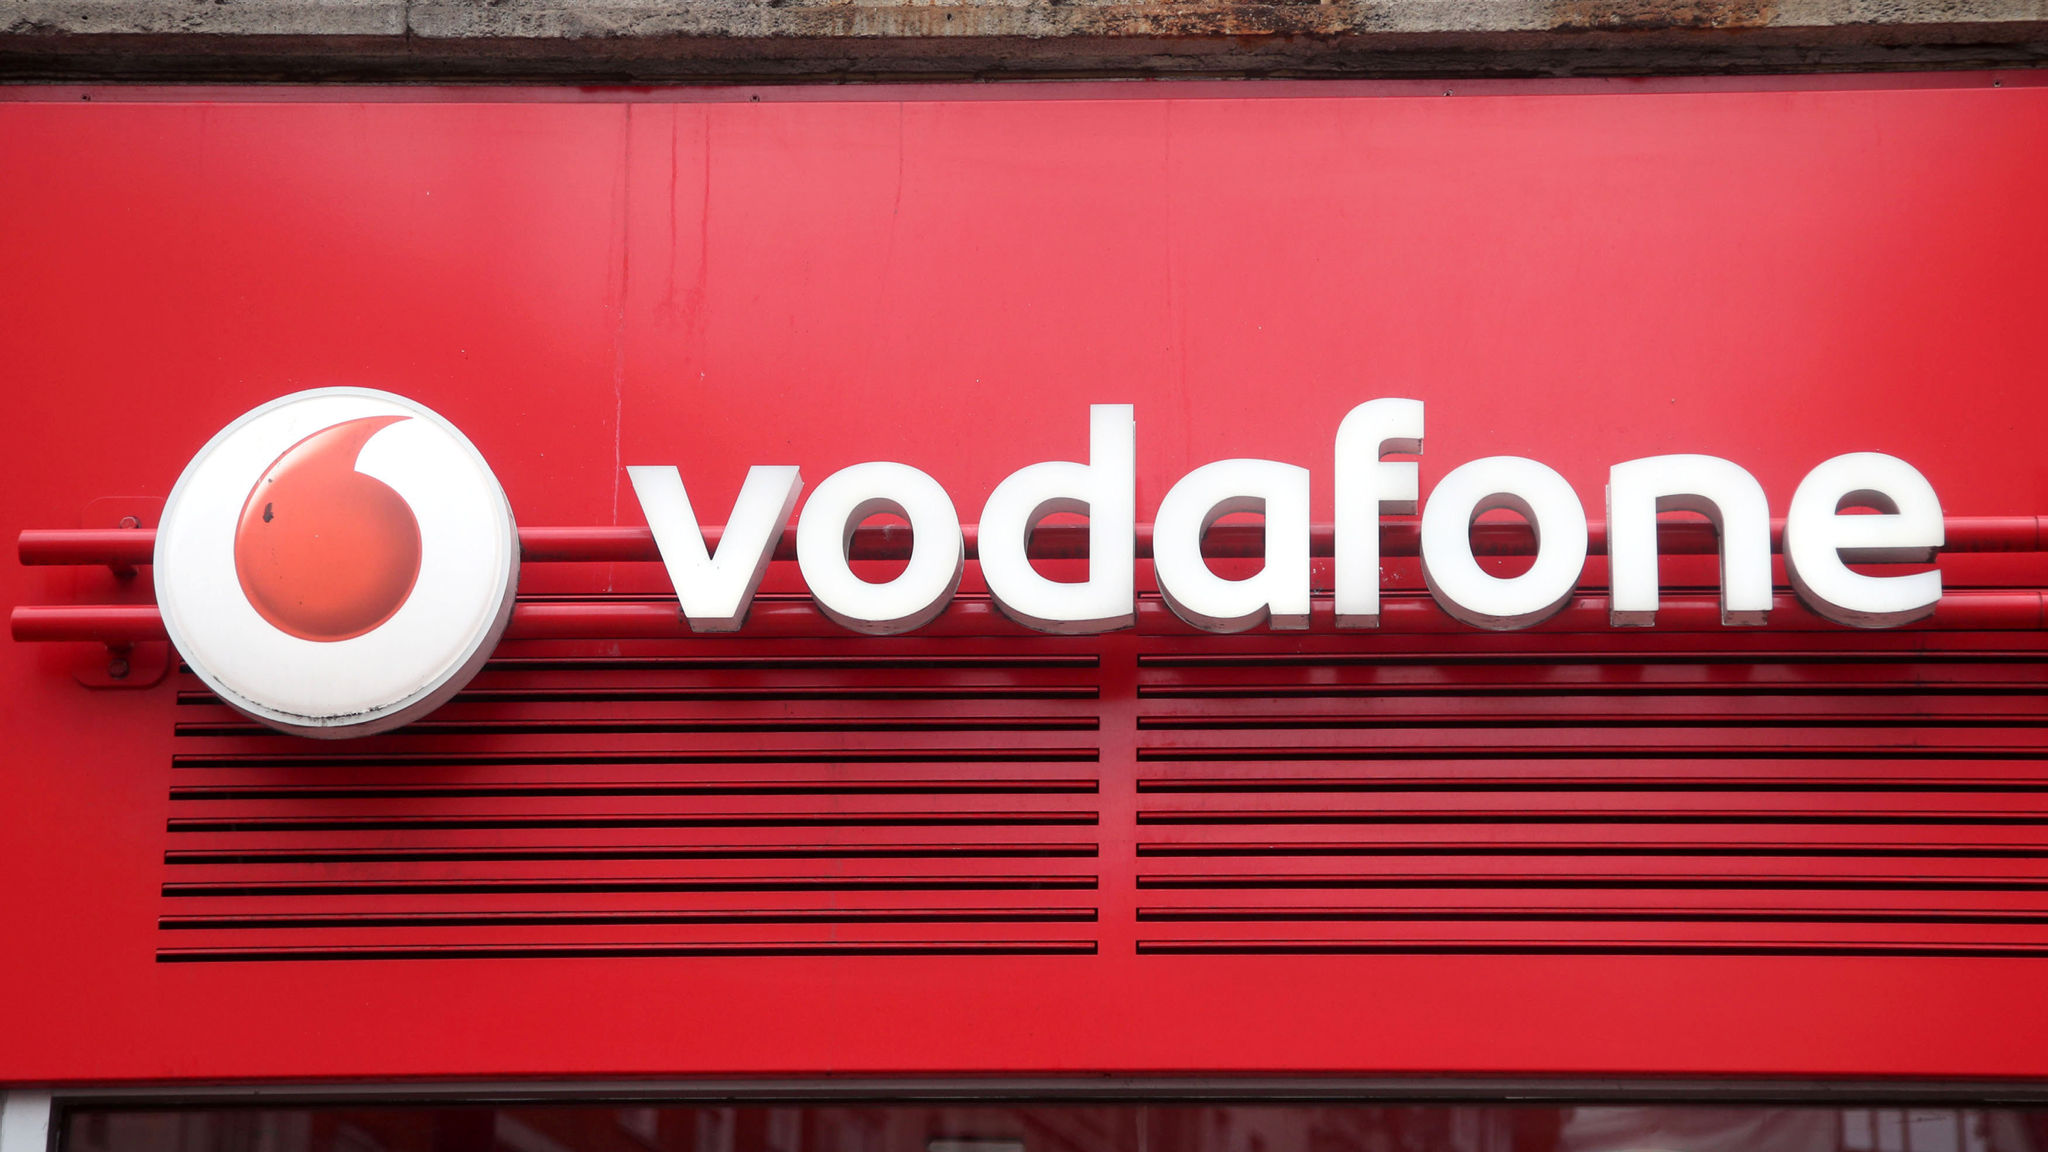 Vodafone plans 1,000 5G sites by 2020 in race with rivals